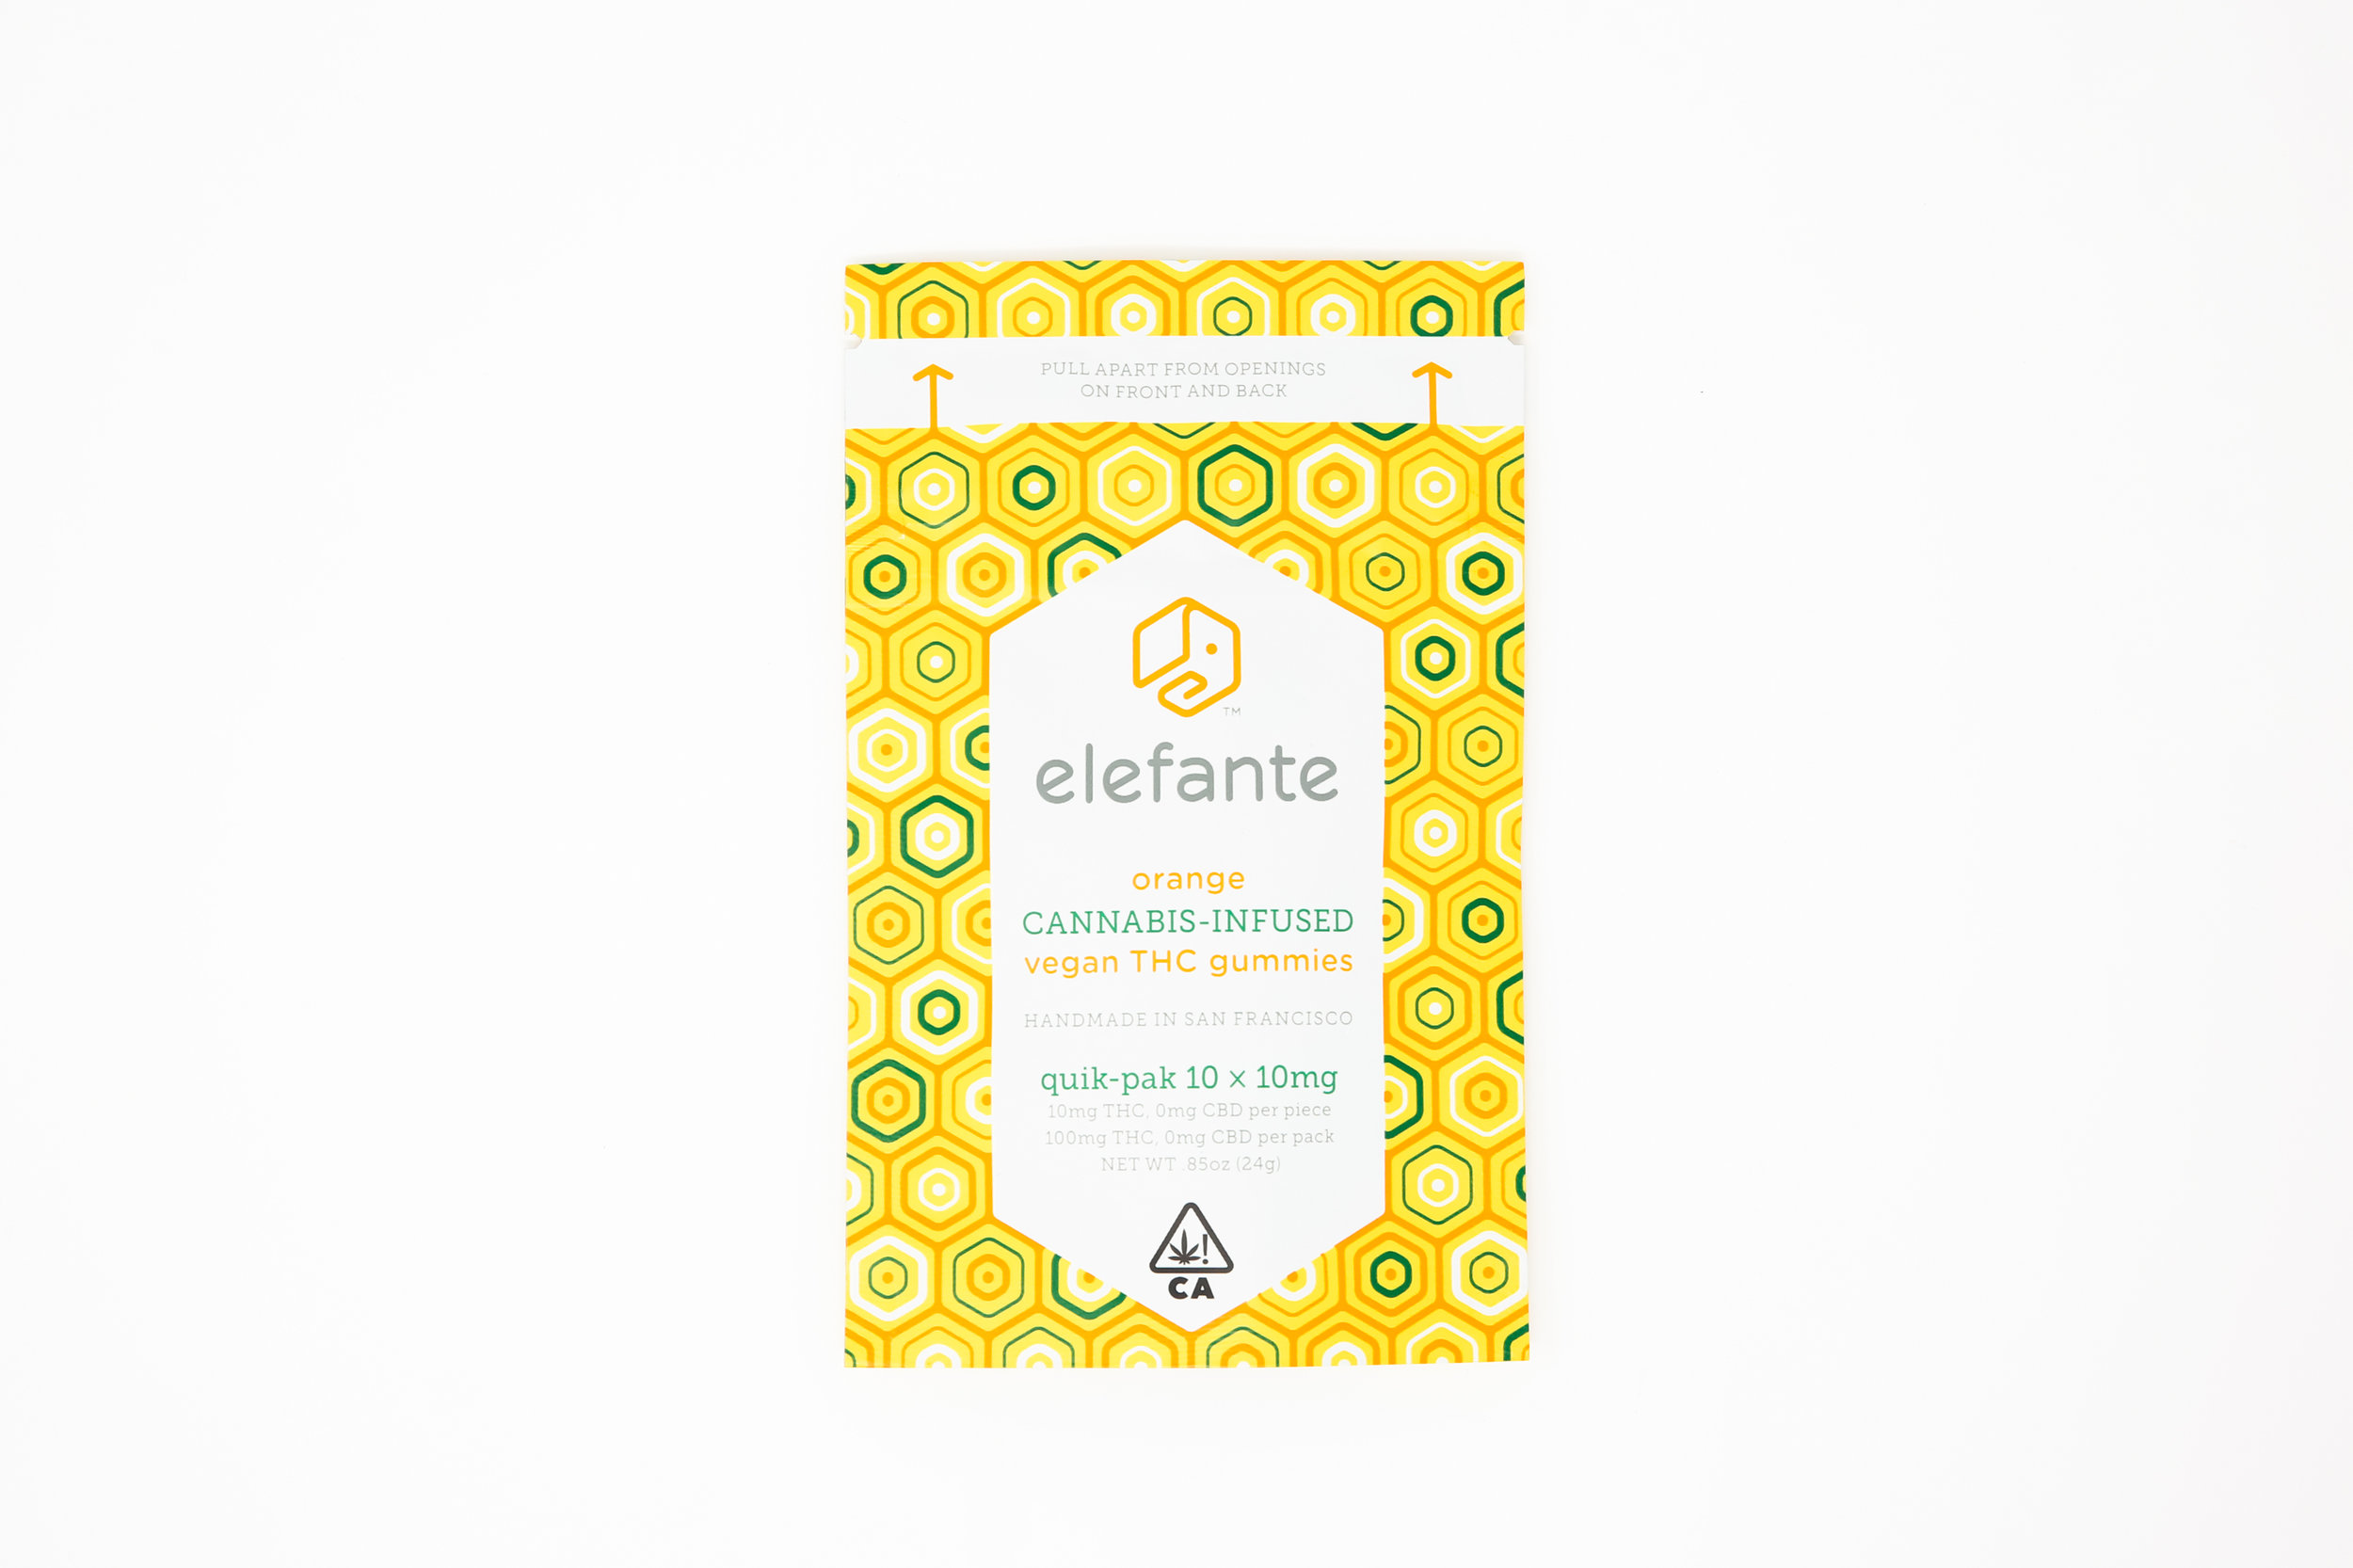 Elefante Quik-Pak Orange 10x10mg  100mg Total THC   Our Orange gummies combine our premium THC distillate with the anxiety reducing and anti-oxidant effects of citrus sinensis oil and the immune boosting effects of Vitamin C. Our fast-acting water-soluble formula allows for rapid absorption for maximum effectiveness with mouthwatering flavor.  Handcrafted using only organic vegan ingredients. Non-GMO and gluten free. Contains no artificial sweeteners, colors or flavors.